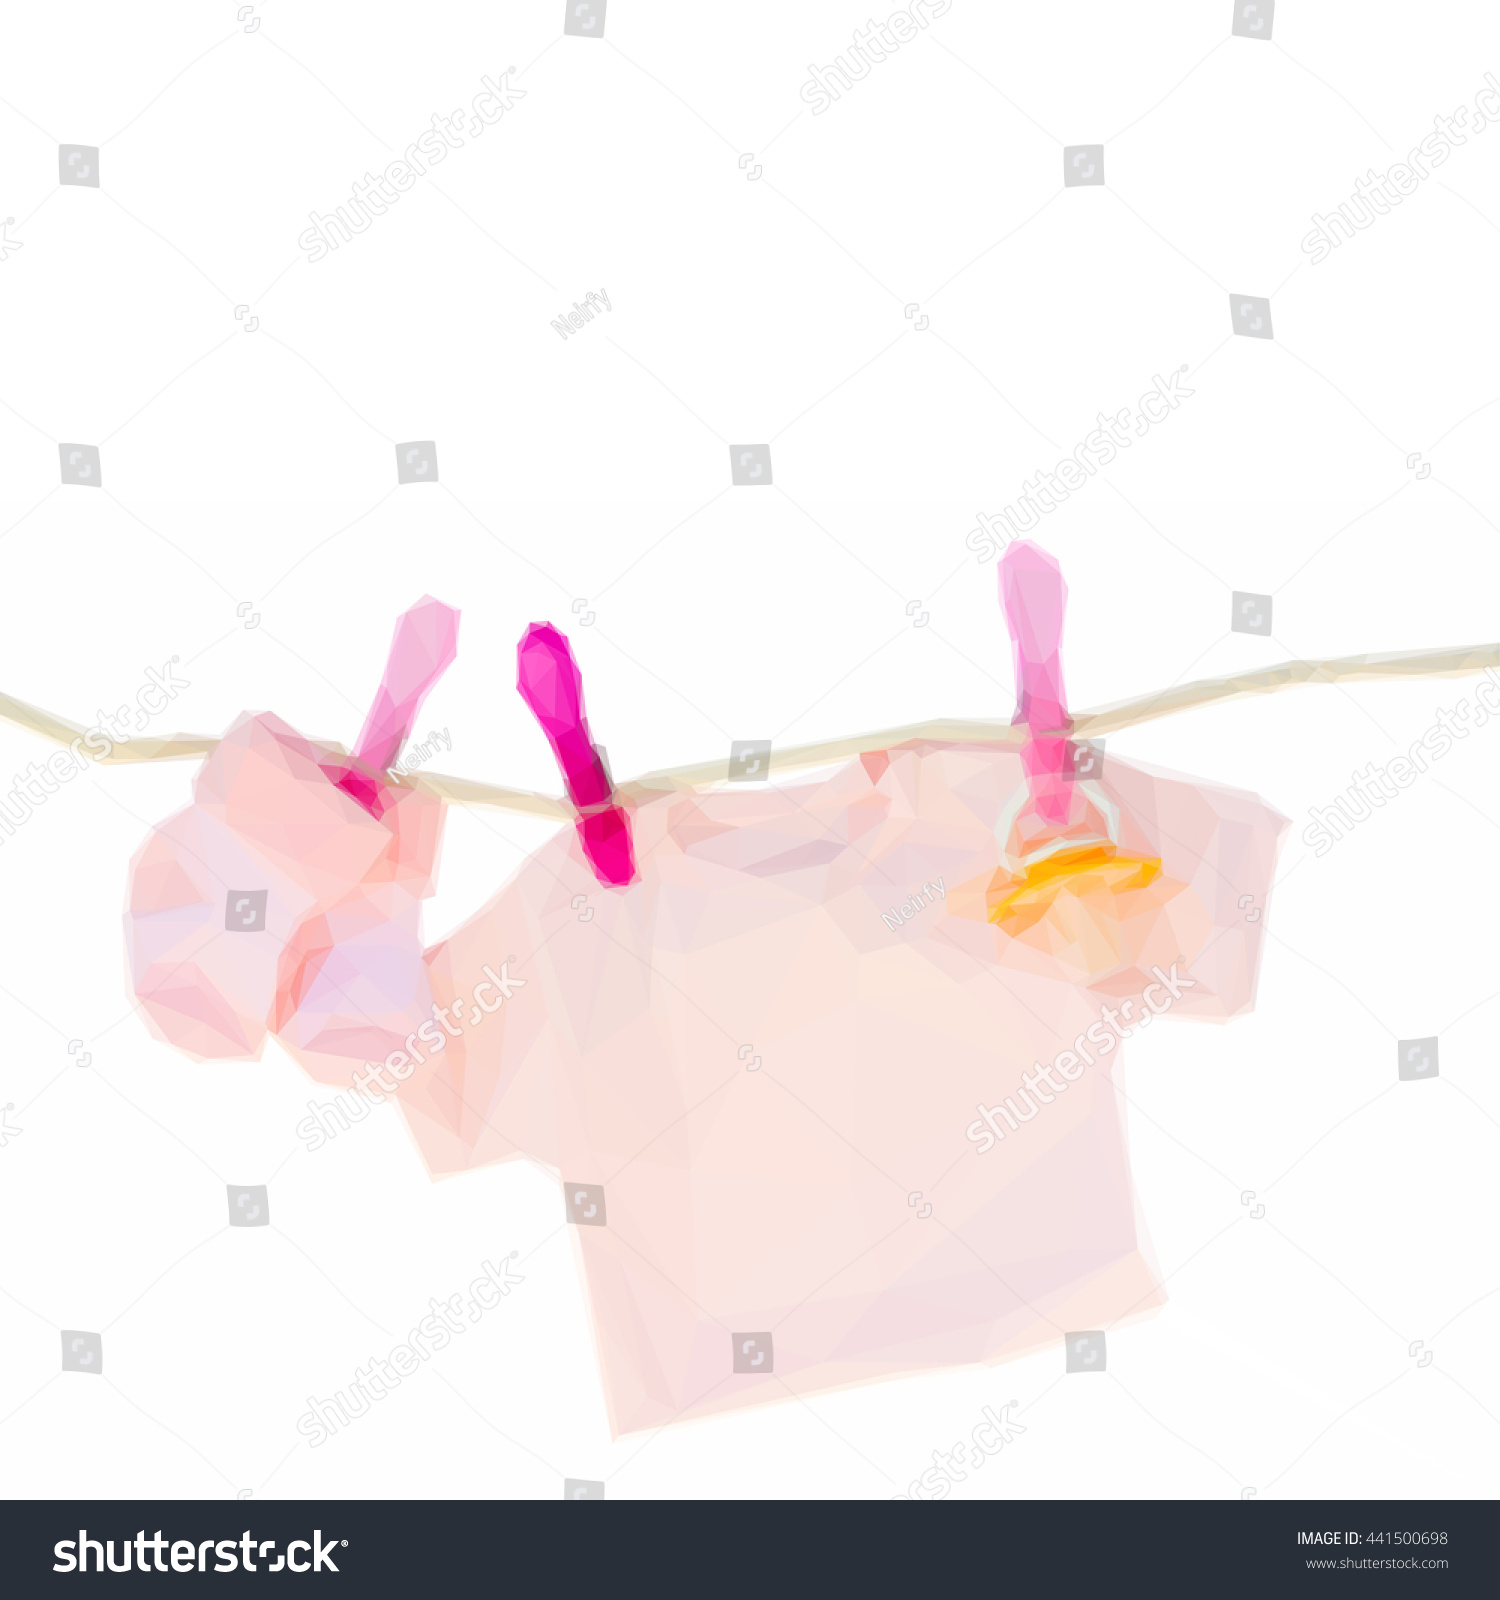 Low Poly Illustration Baby Pink Clothes Stock Vector